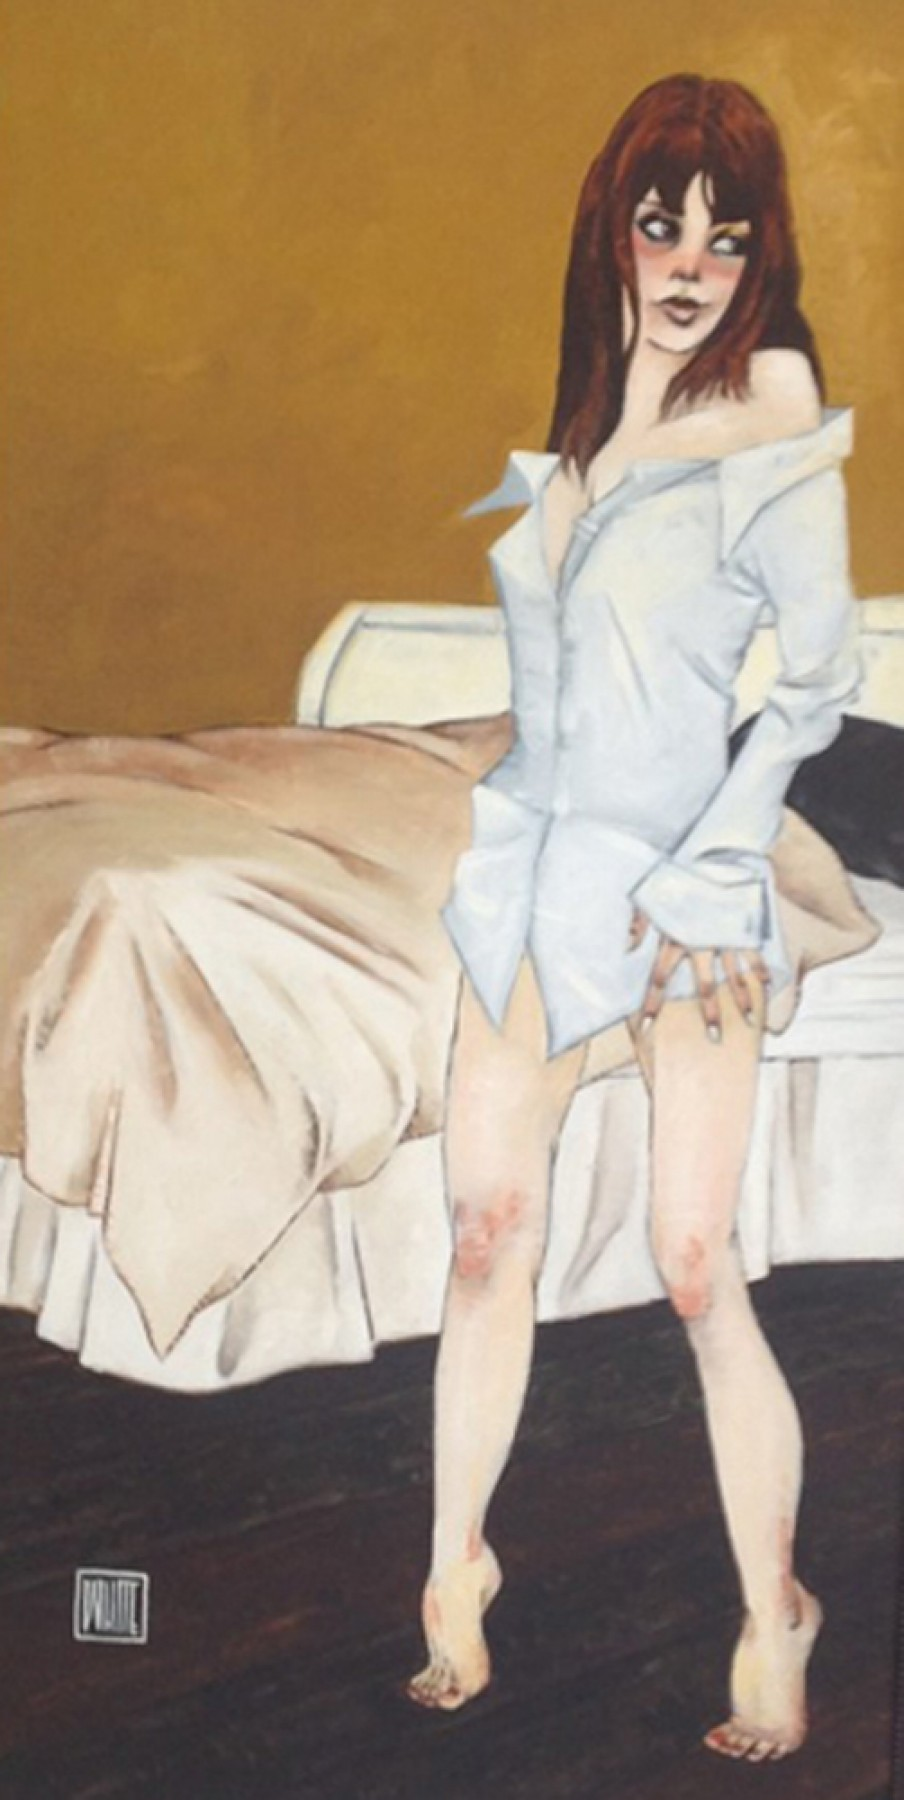 She Wears His Shirt 2012 50x31